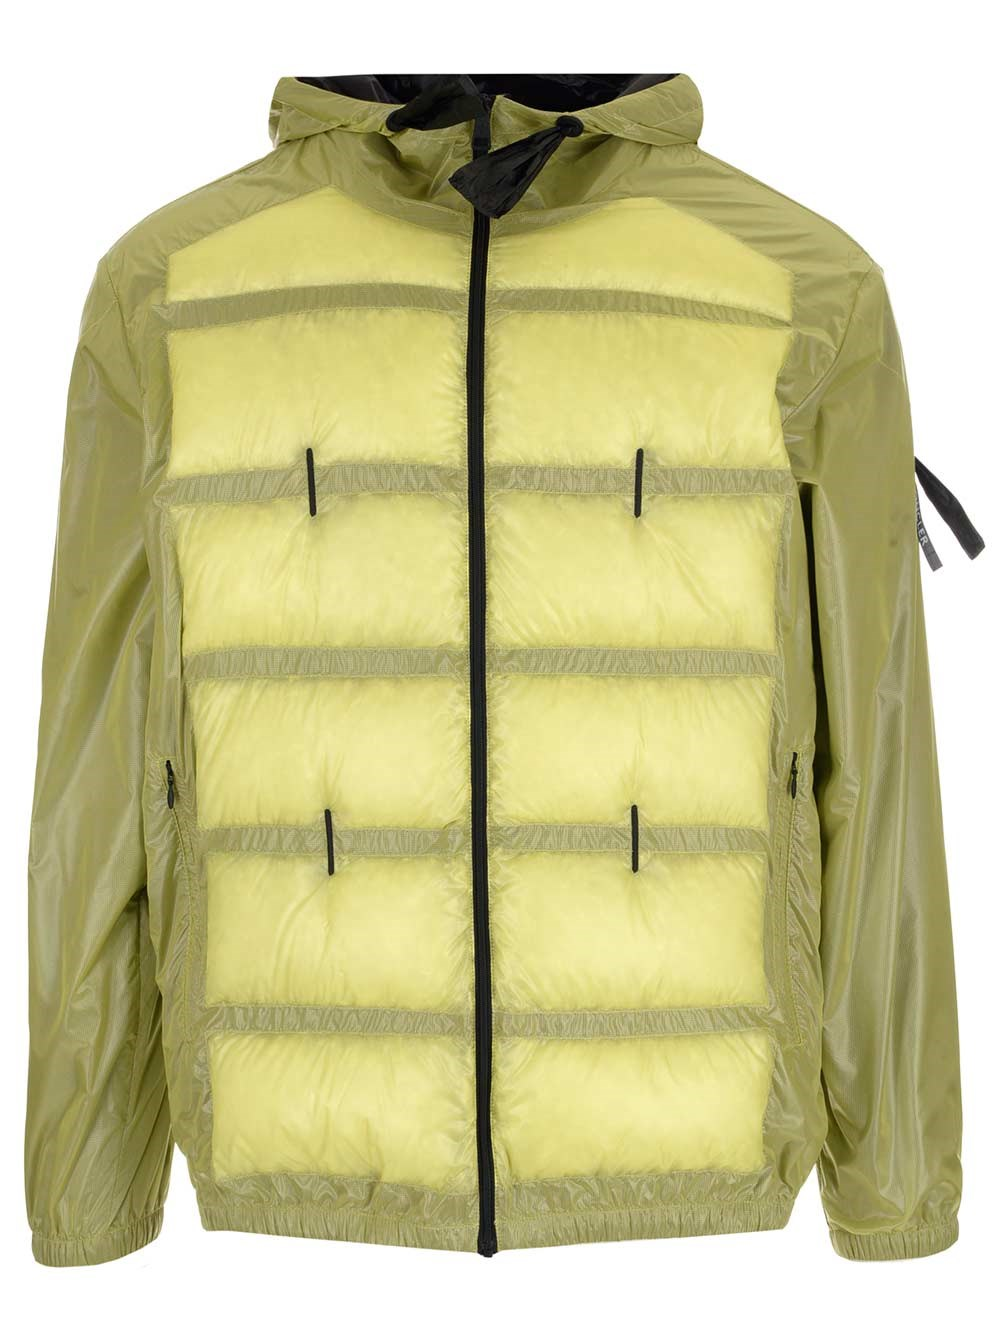 MONCLER GENIUS Yellow 5 Moncler Craig Down Jacket